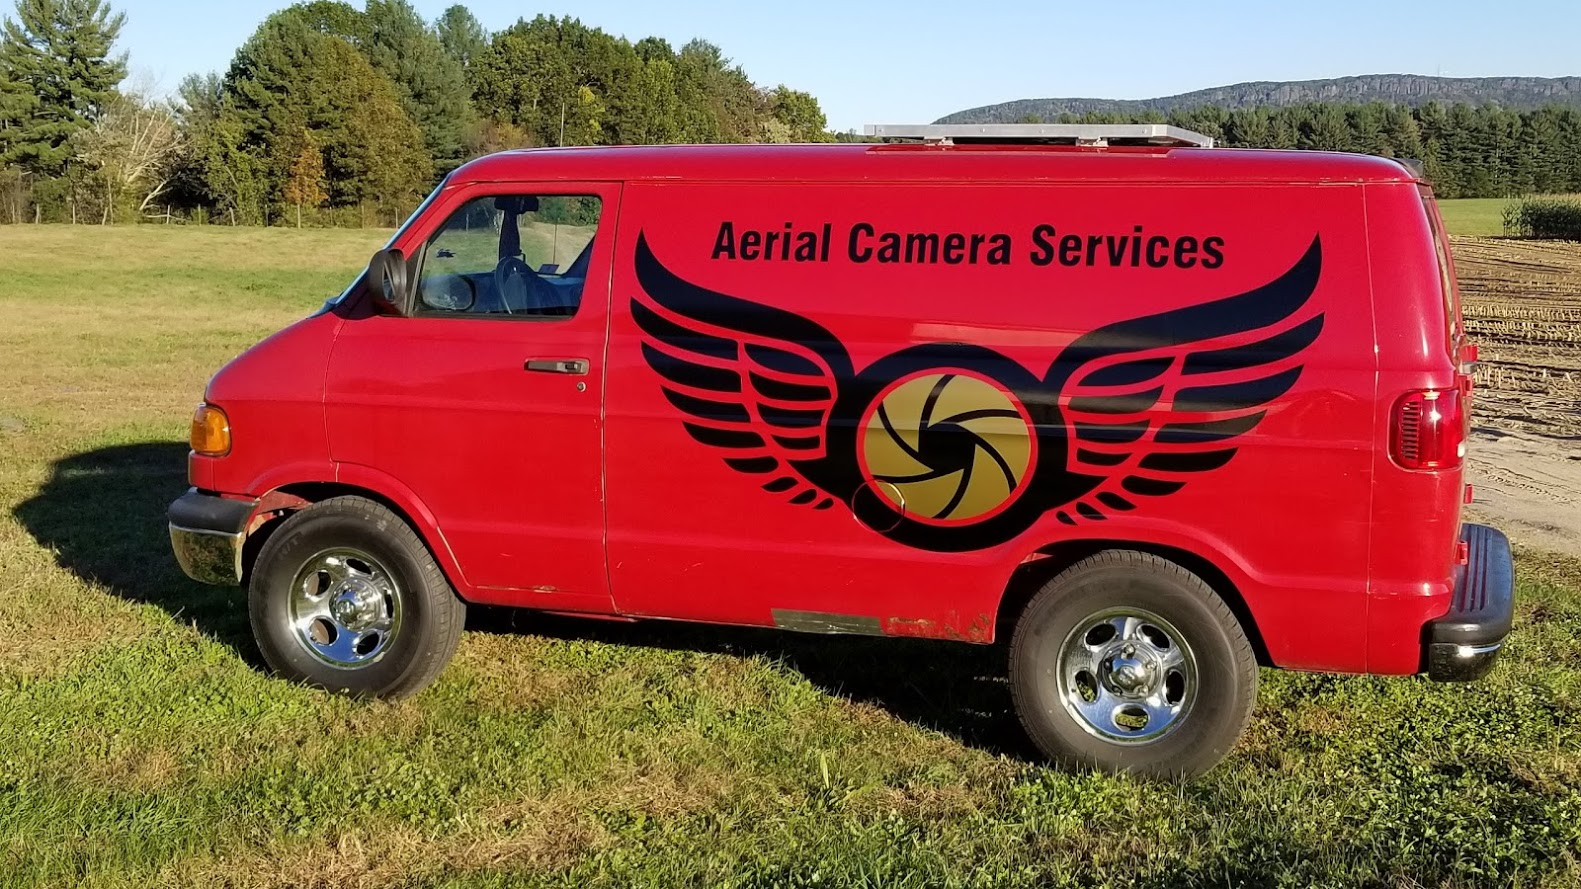 Best Drone Service Provider